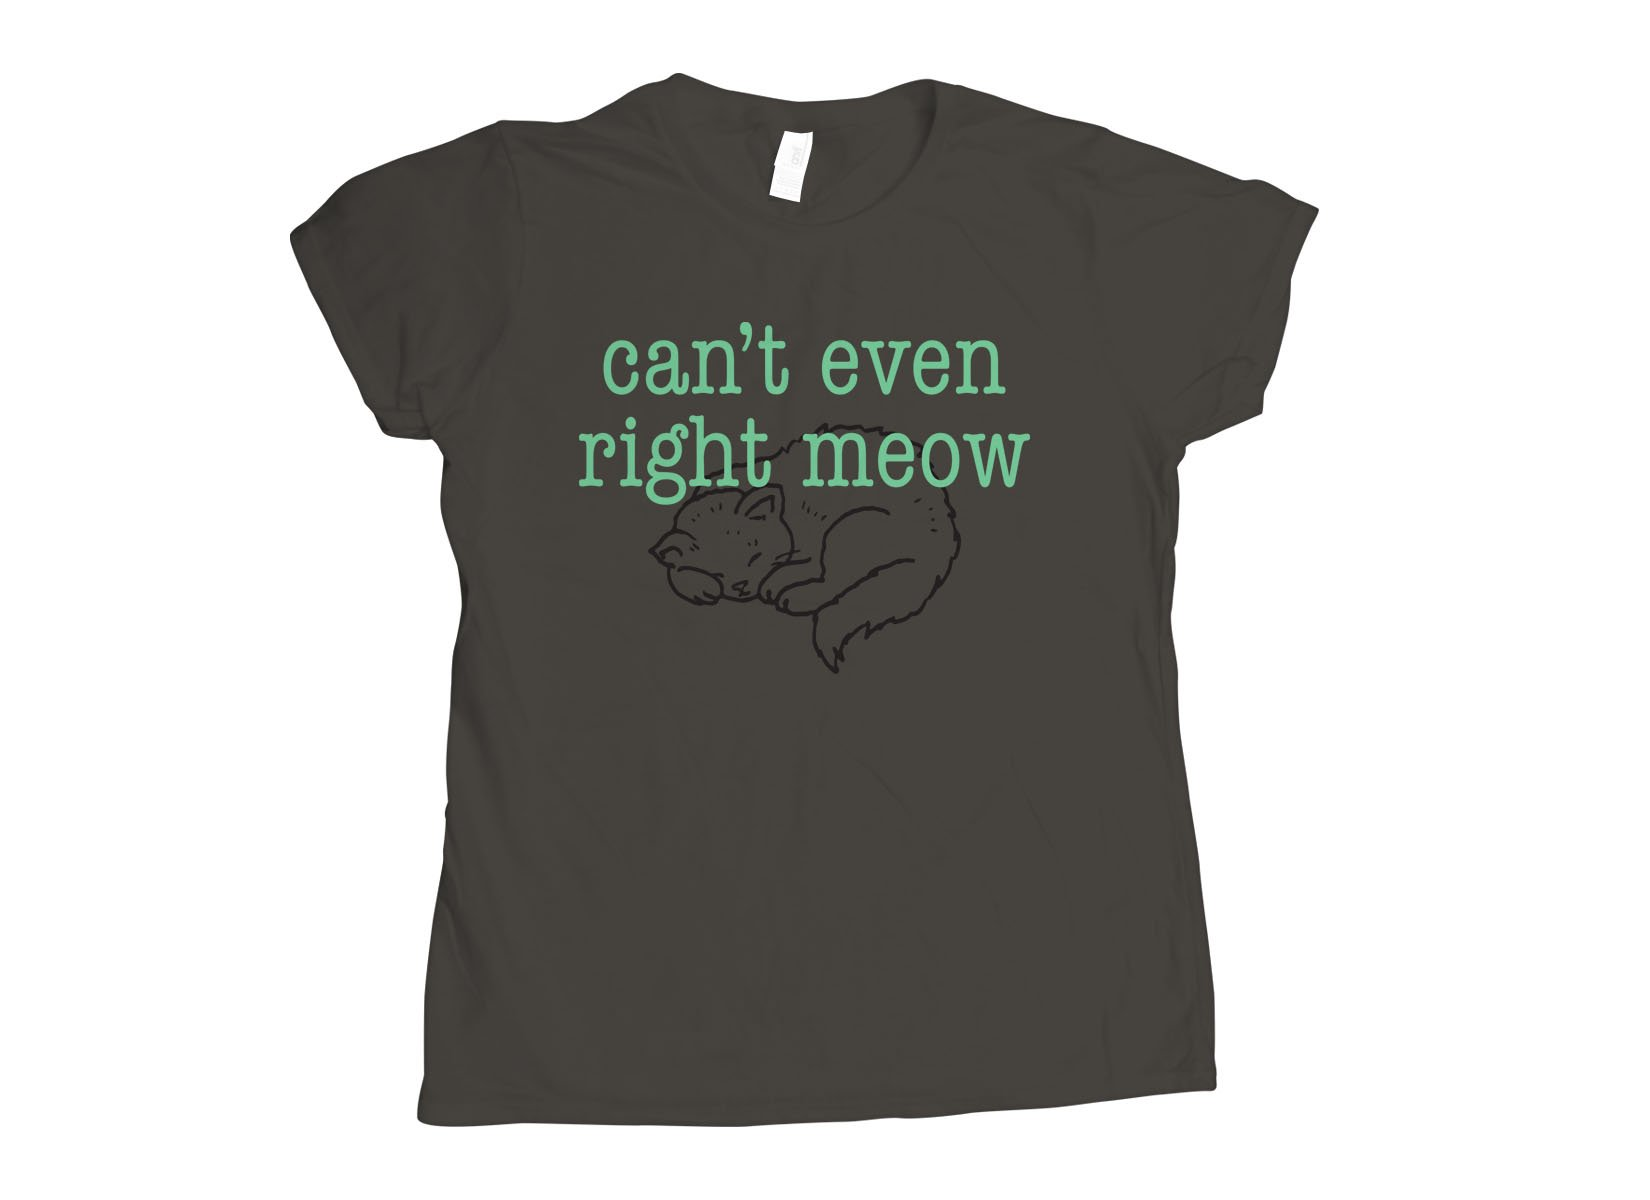 Can't Even Right Meow on Womens T-Shirt